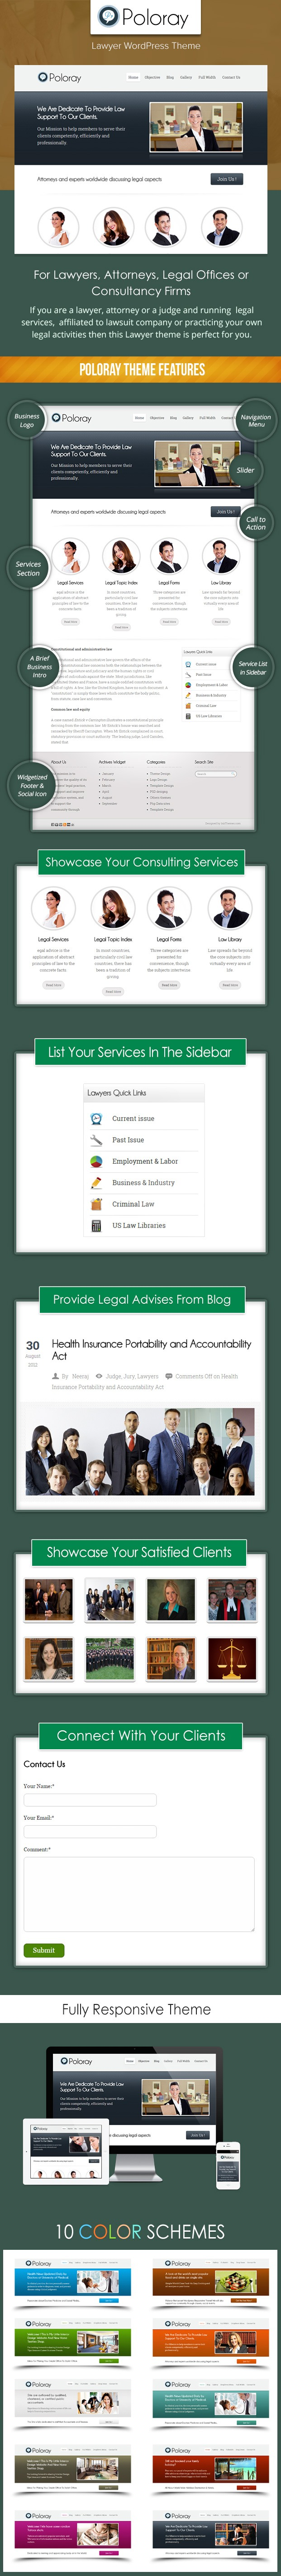 wordpress lawyer theme